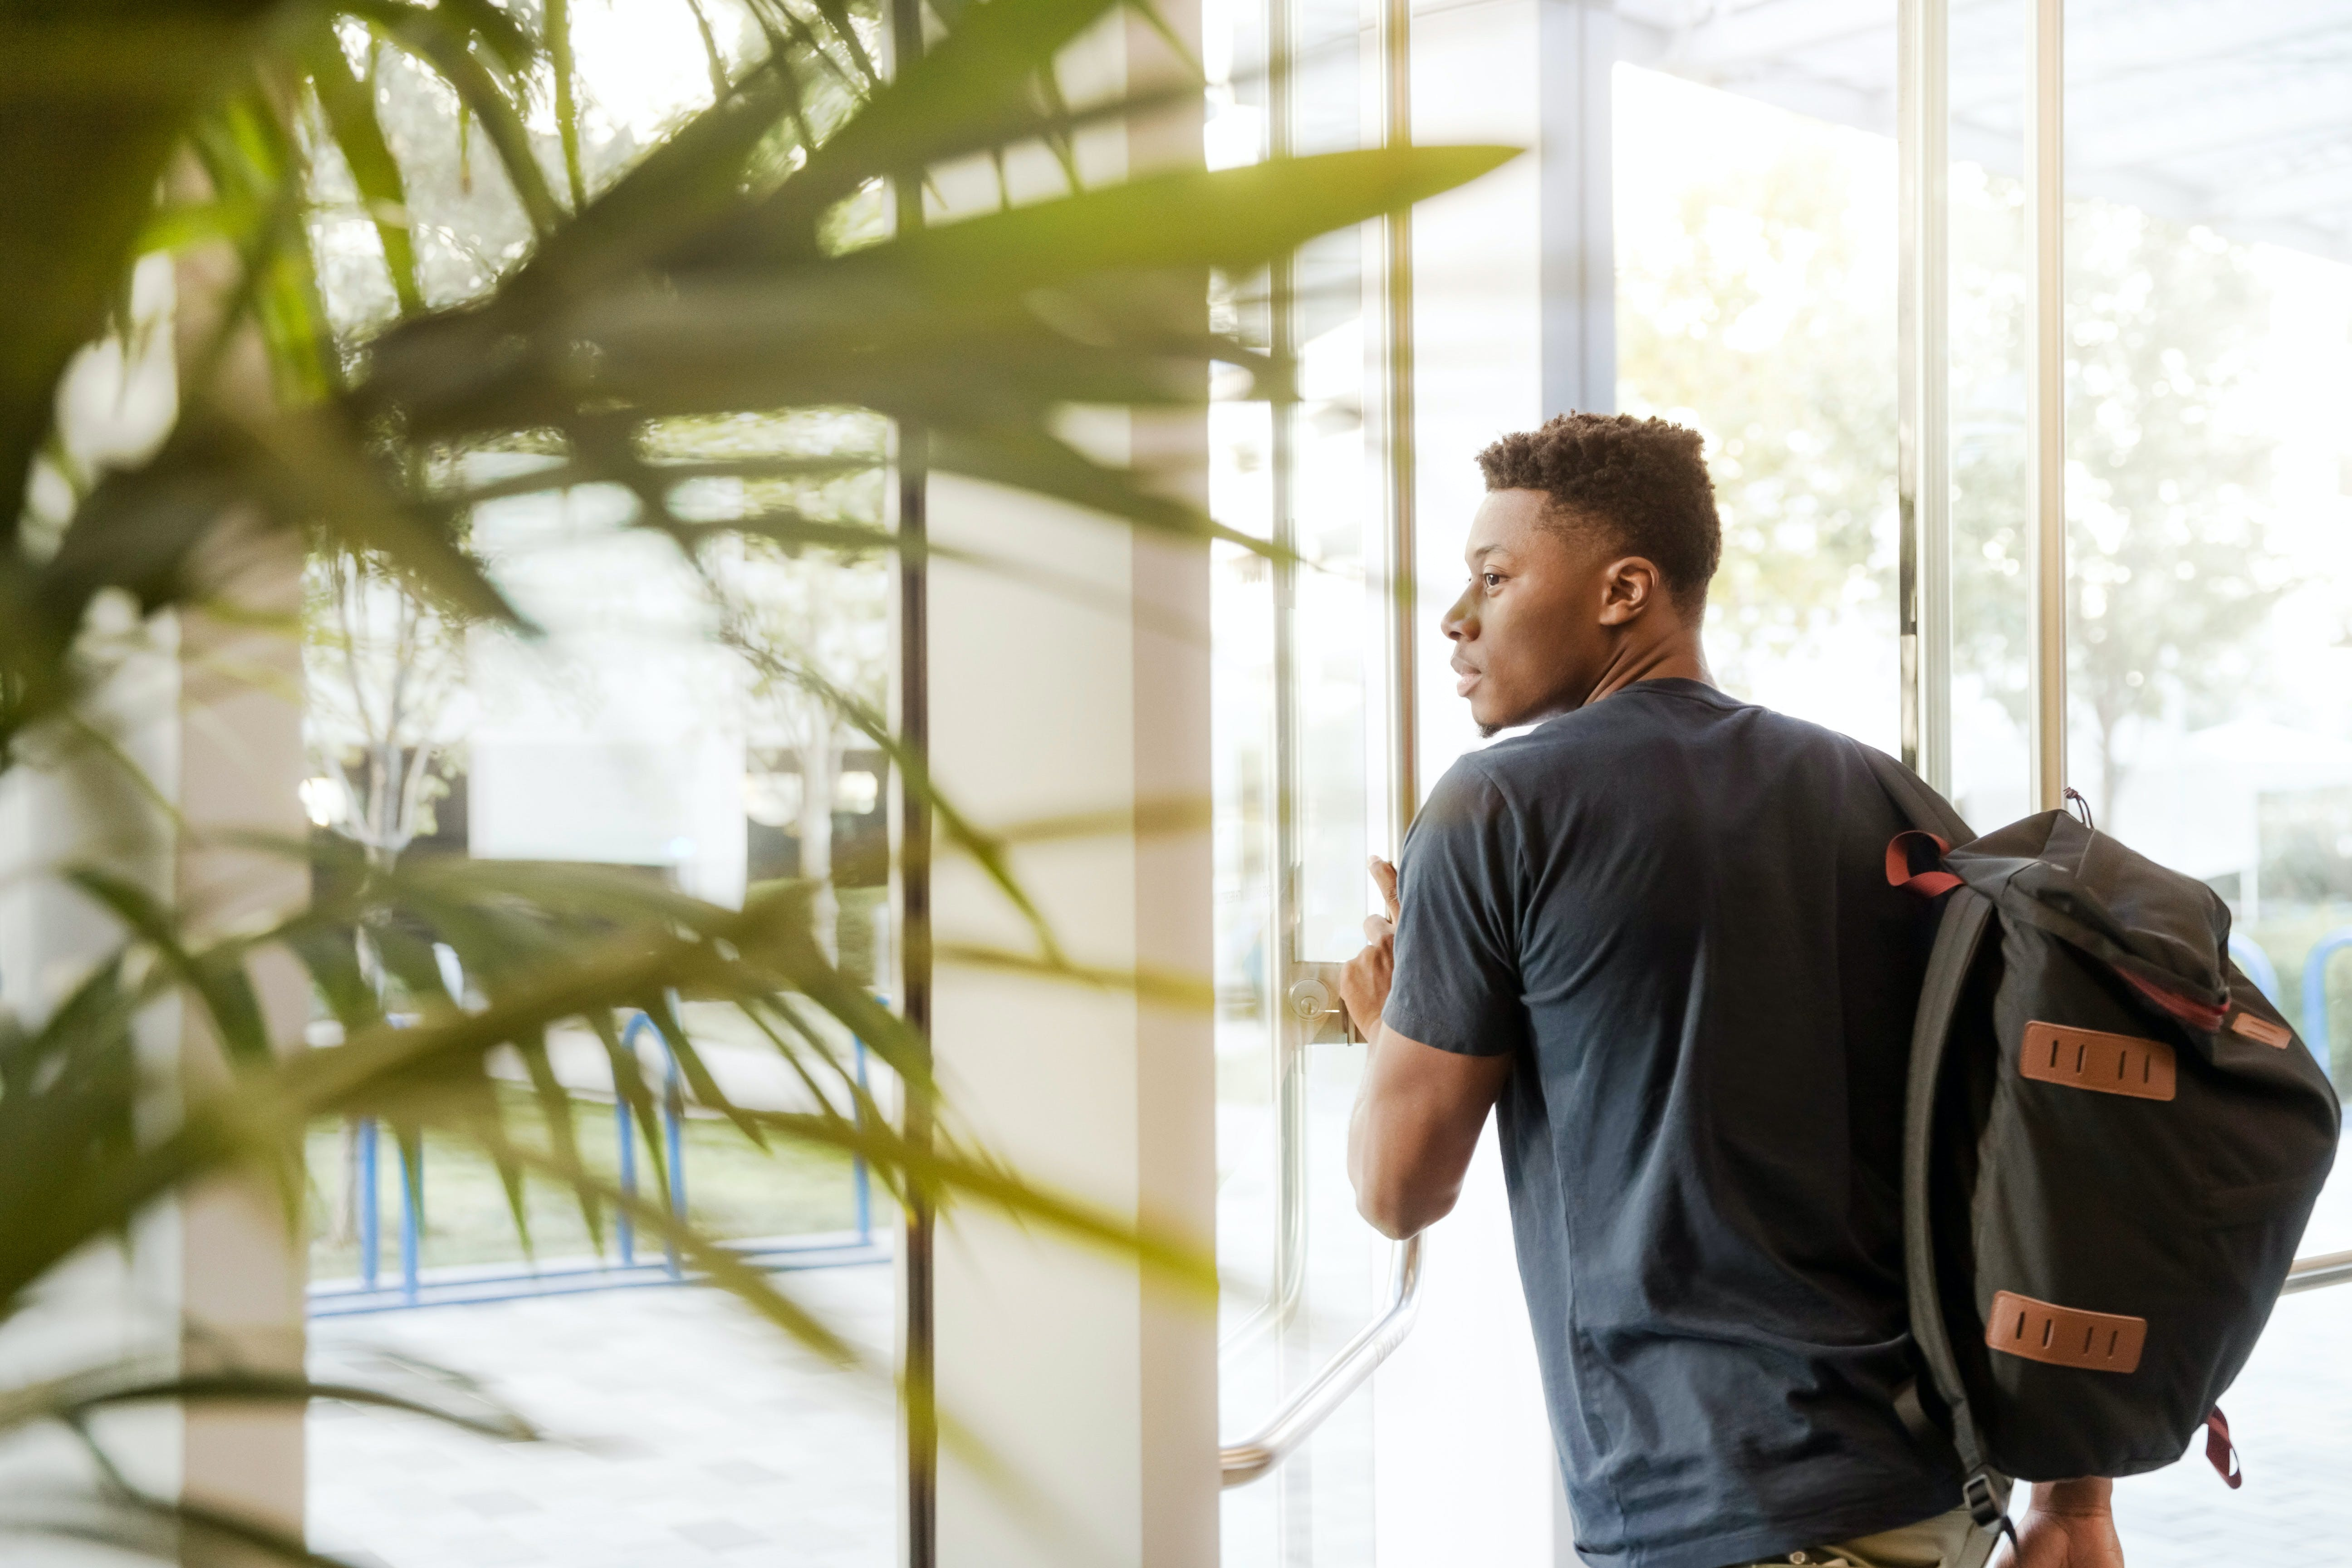 Man Looking Outside Window Carrying Black and Brown Backpack While Holding His Hand on Window